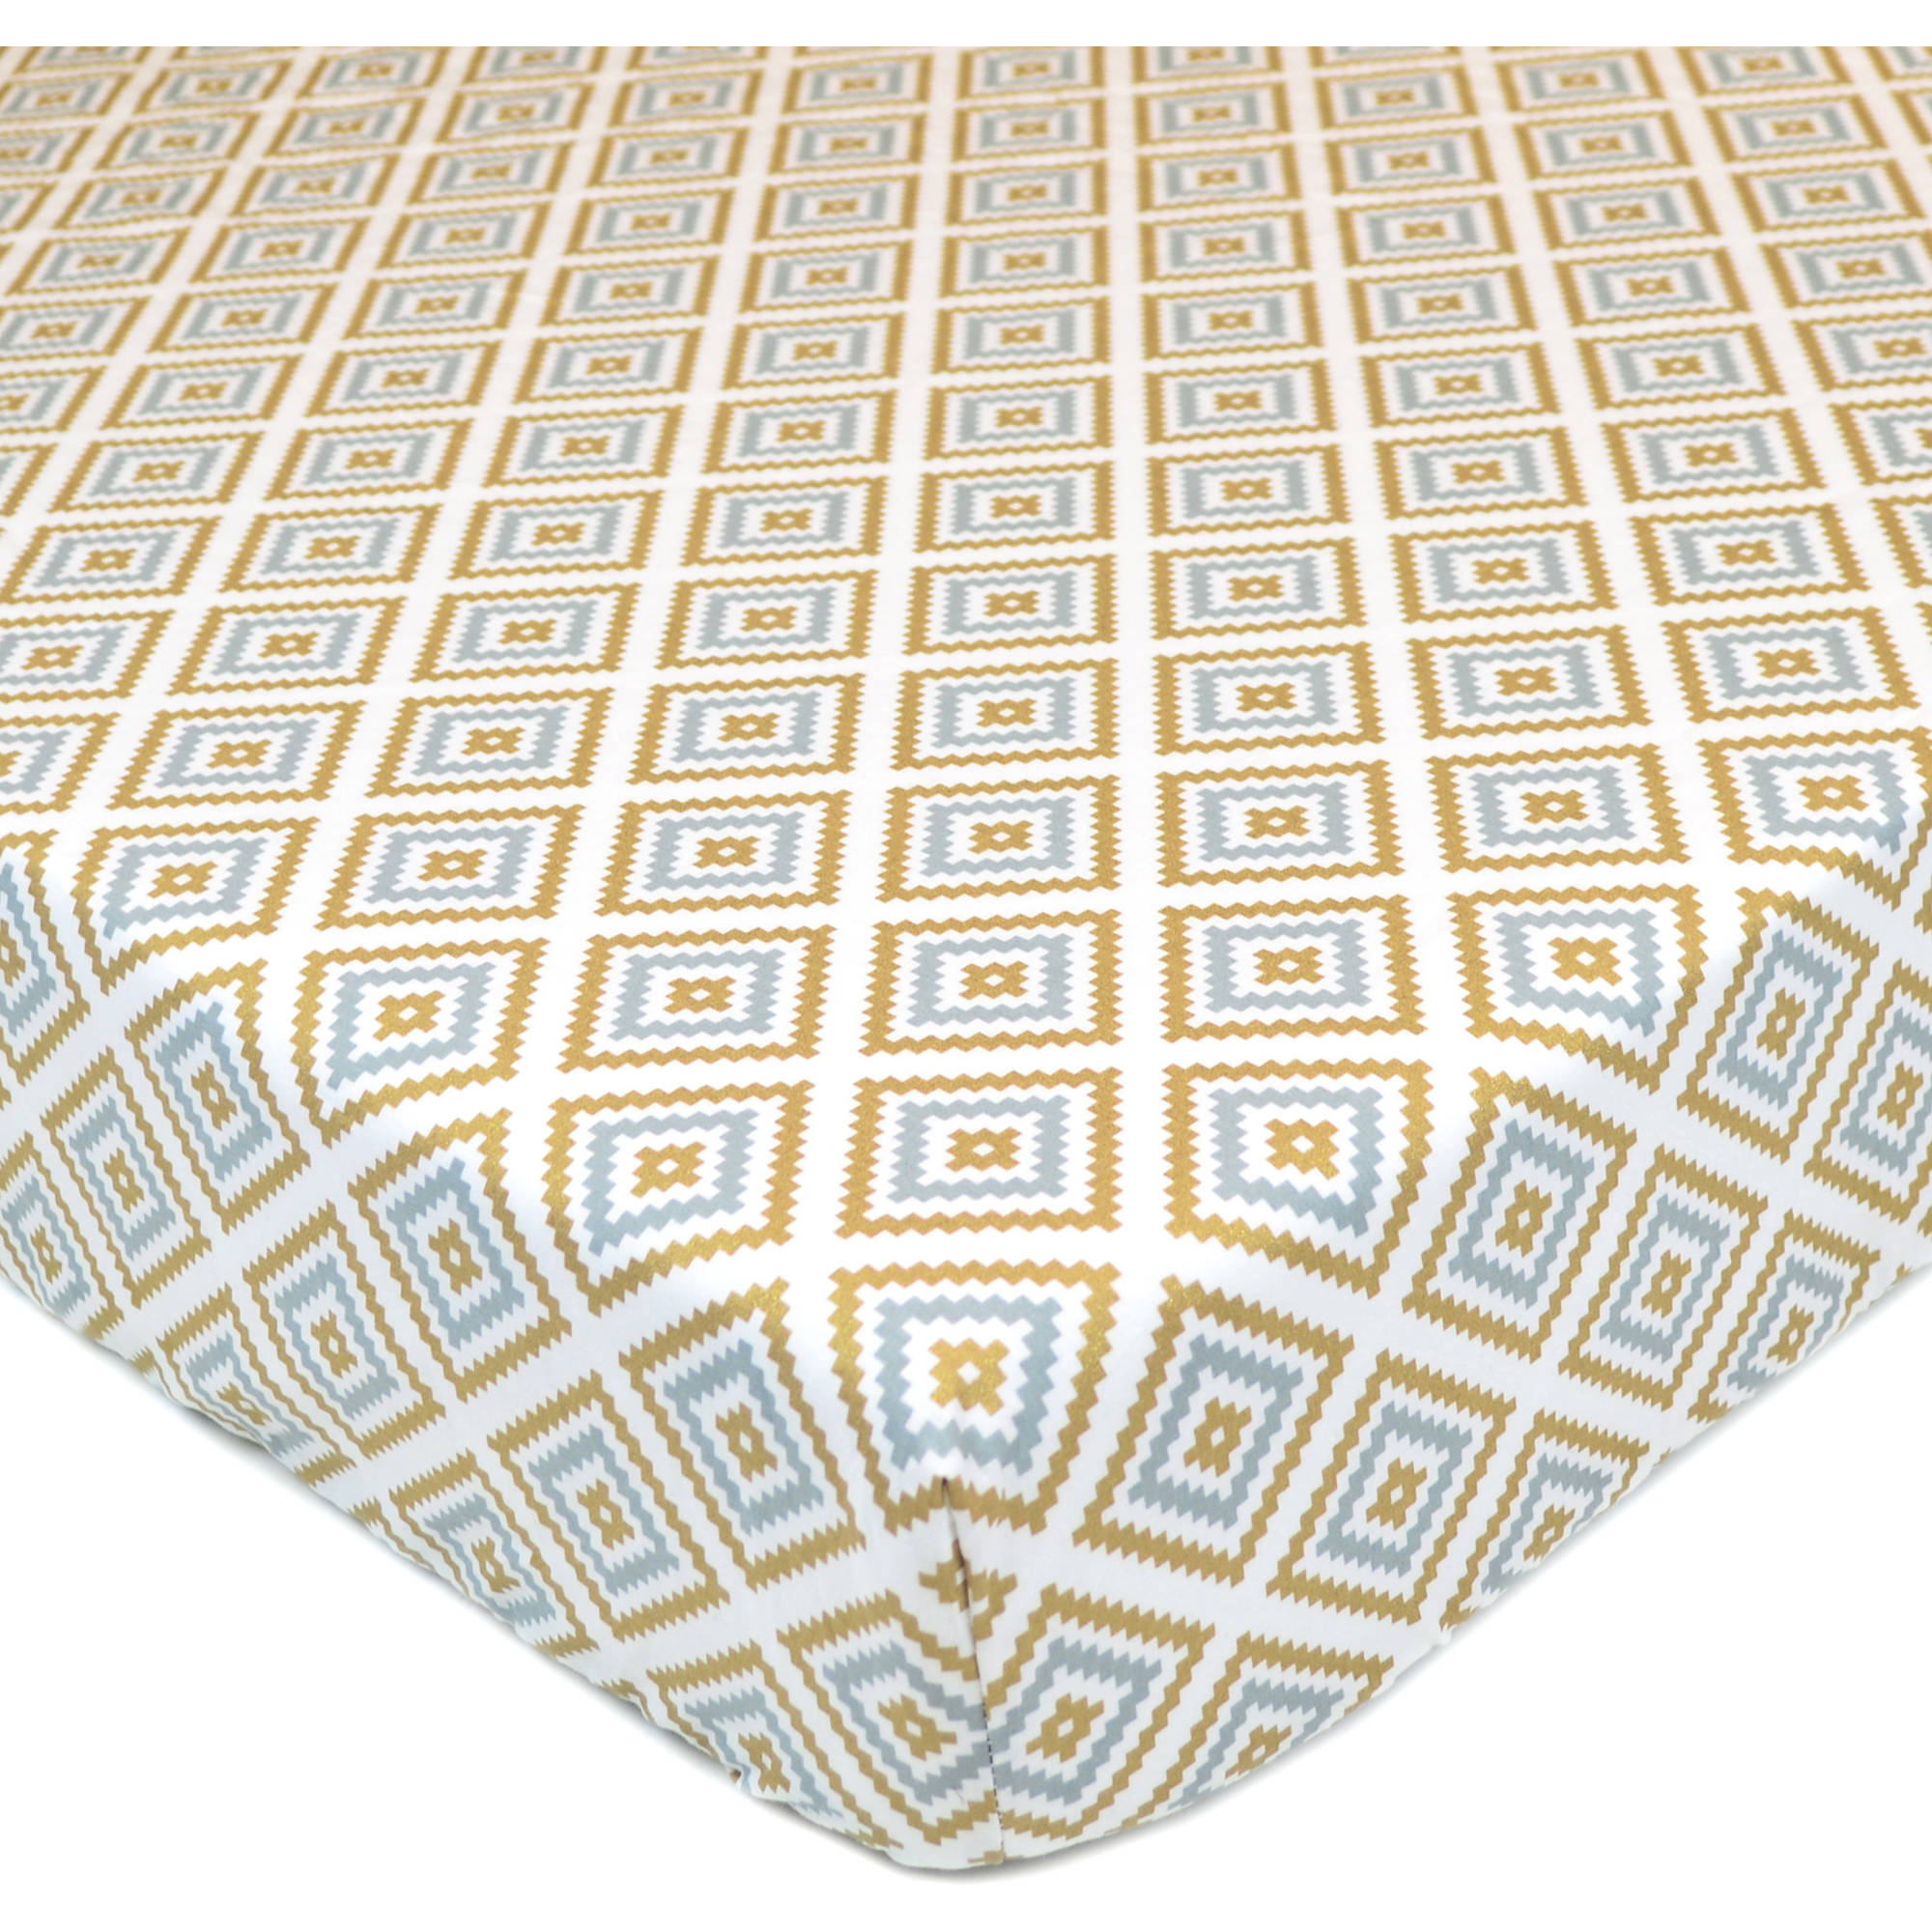 American Baby Company 100 Percent Cotton Percale Printed Sparkle Fitted Crib Sheet, Gold/Grey Kilim